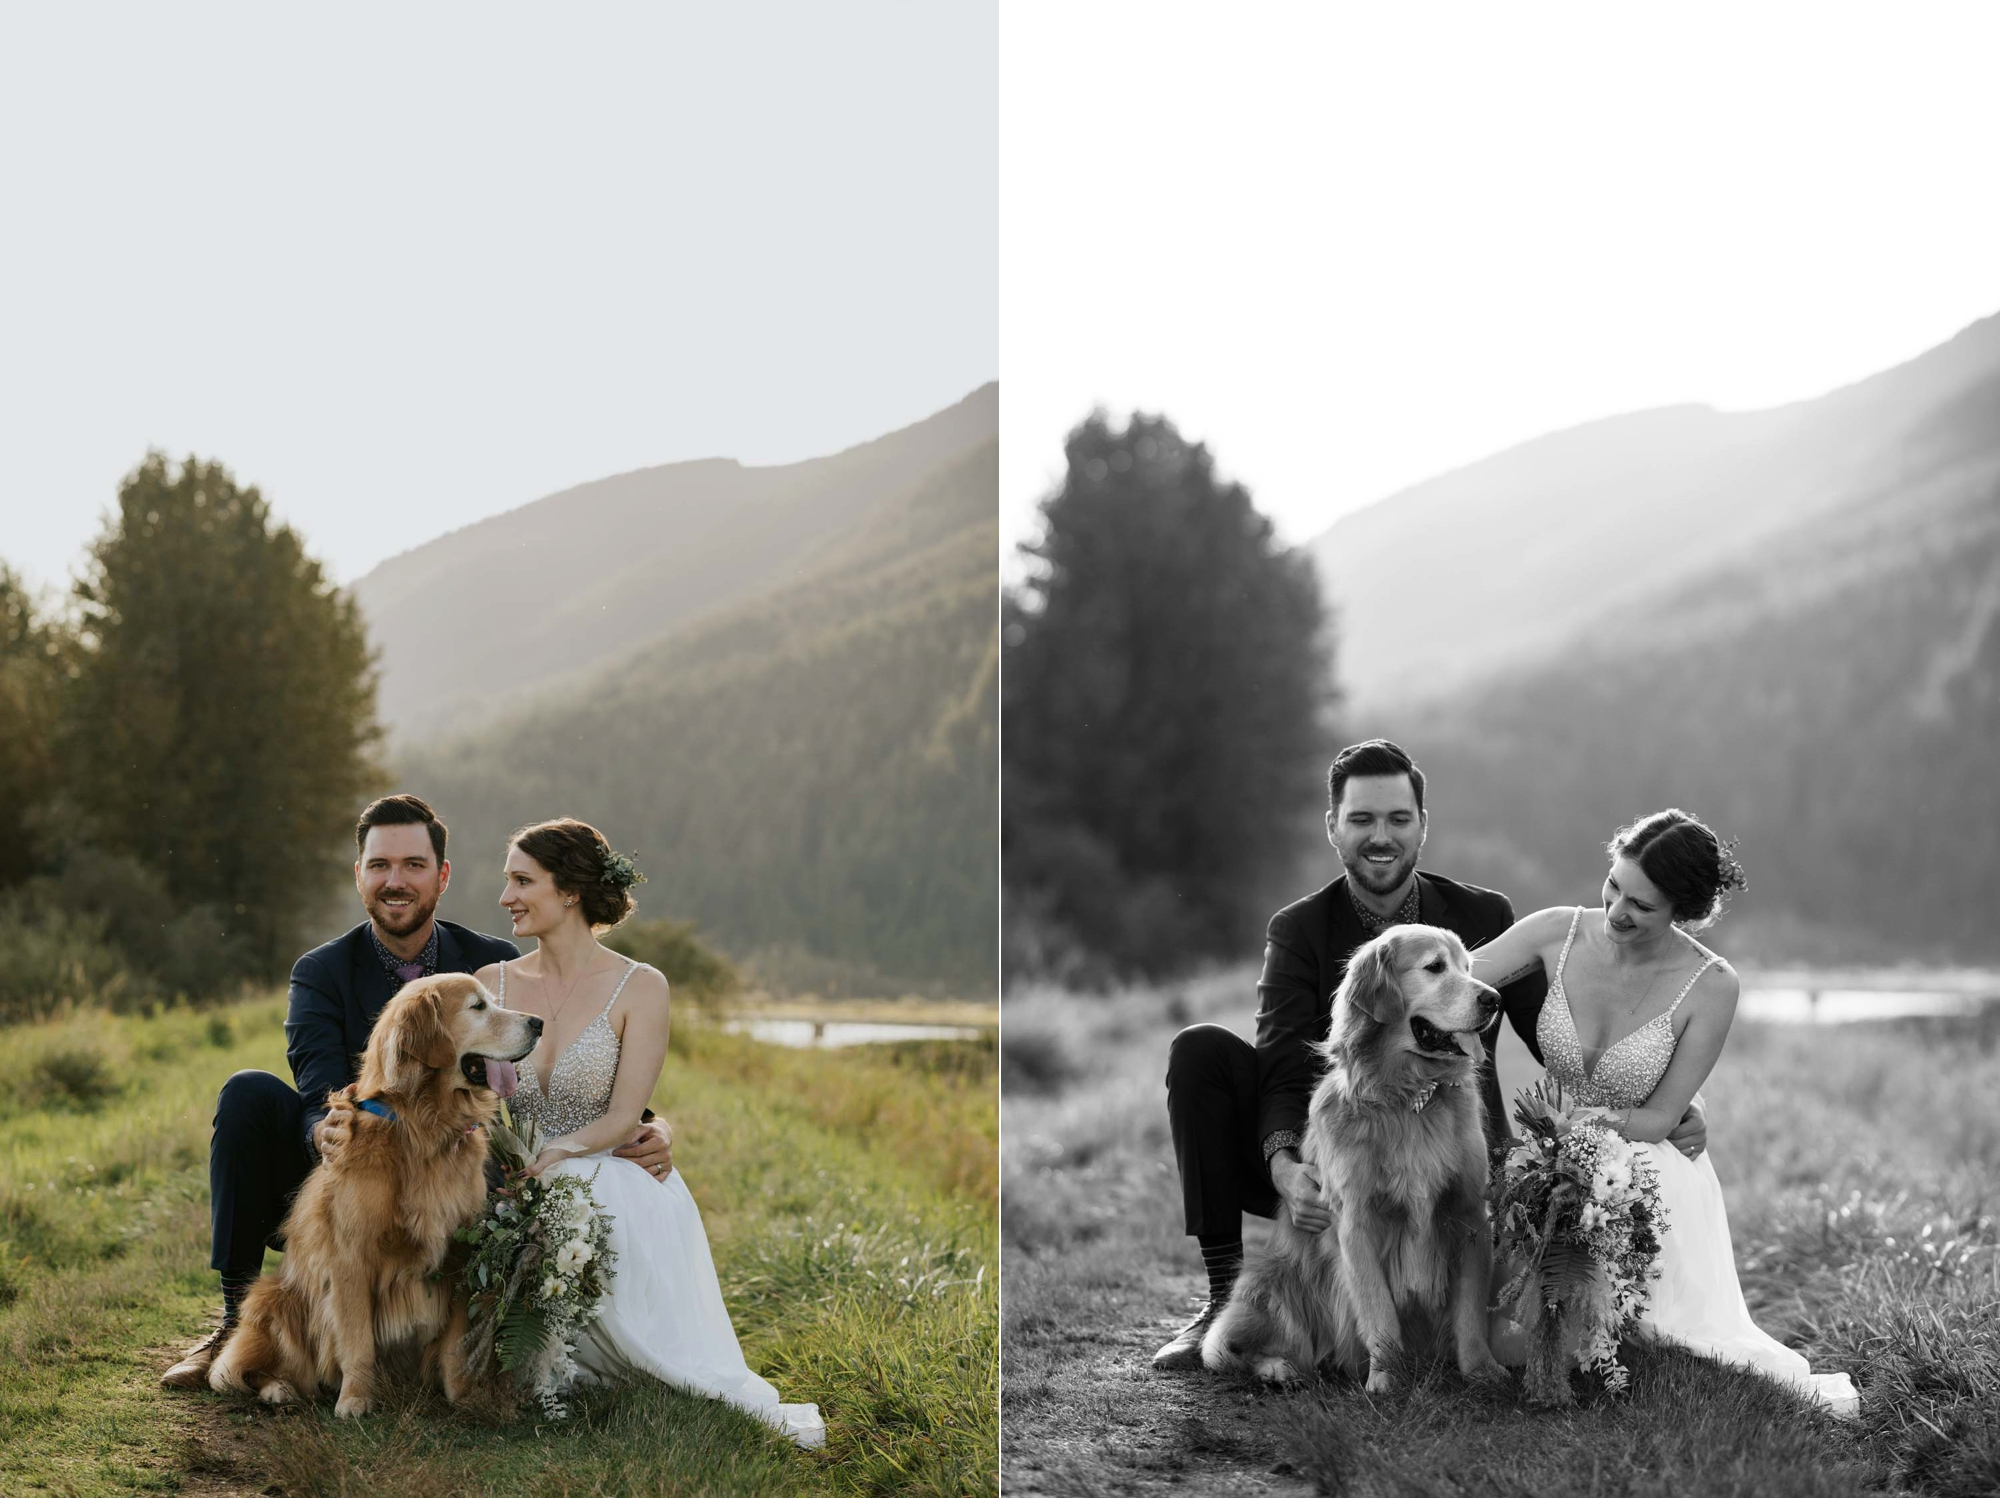 Cute, amazing bride and groom wedding portraits with their dog